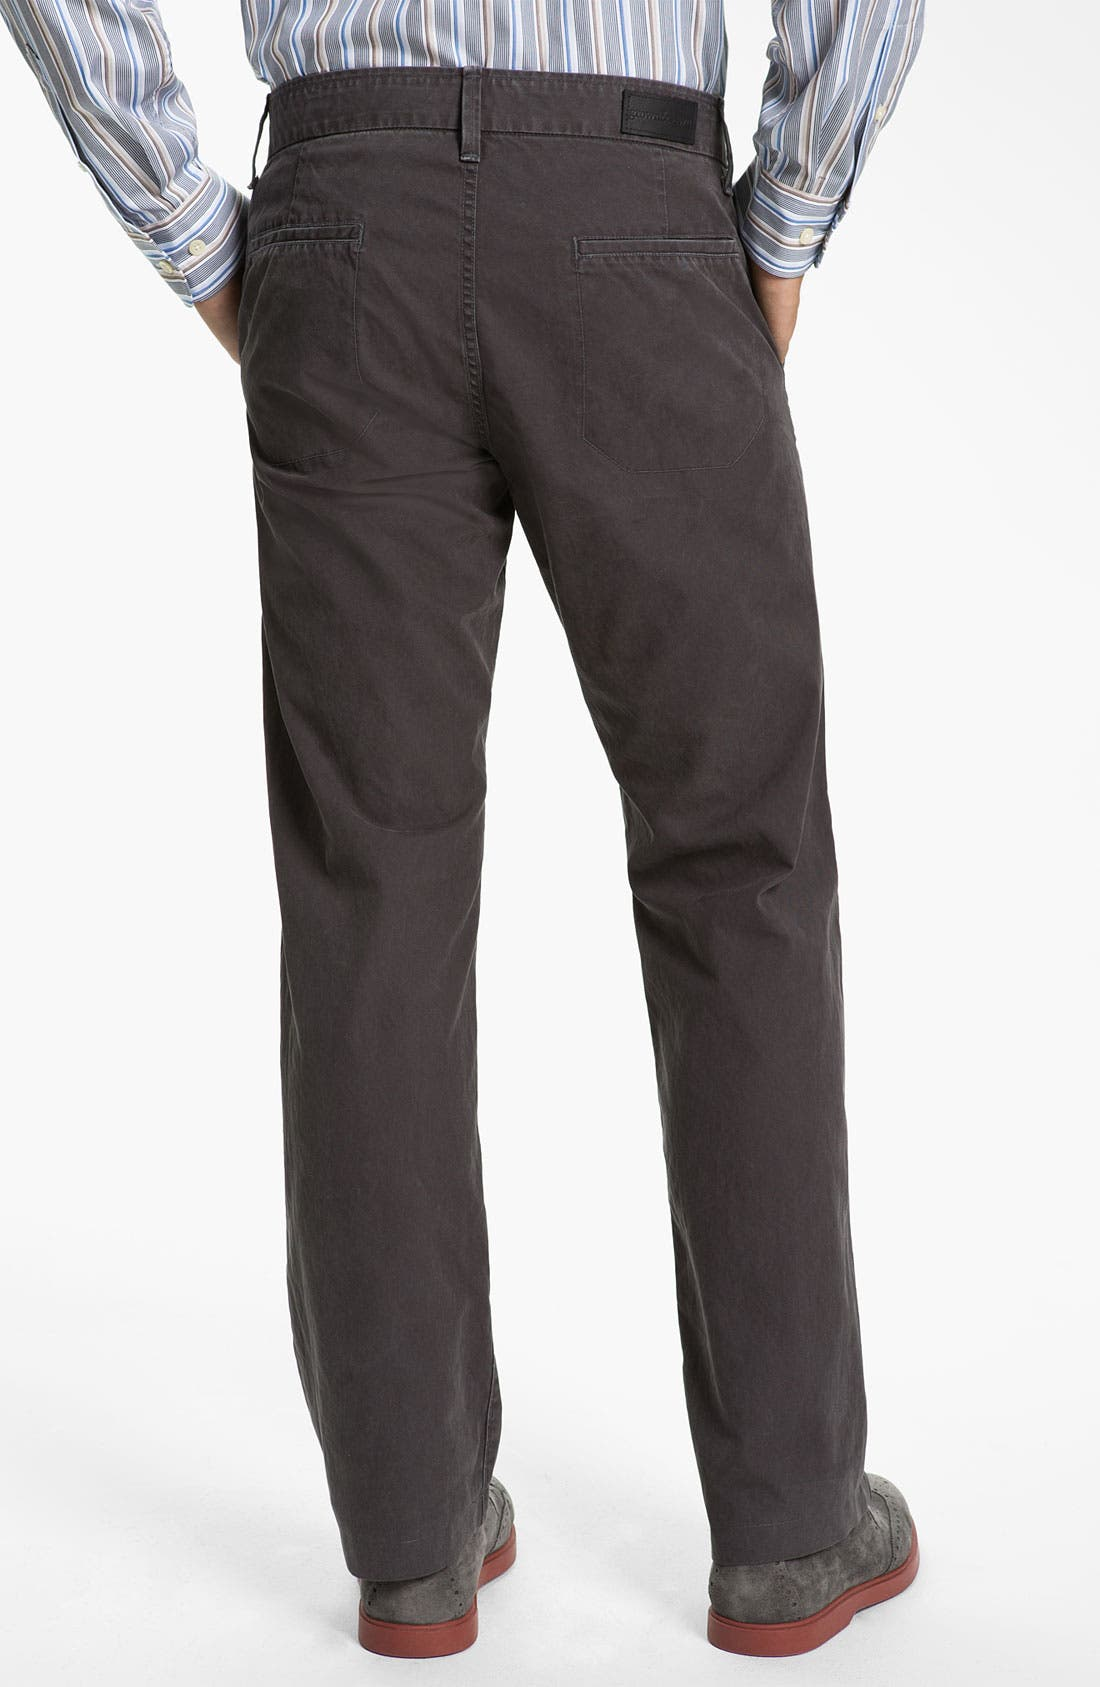 Kroon Wool & Cashmere Sportcoat & Grown & Sewn Twill Pants,                             Alternate thumbnail 2, color,                             020